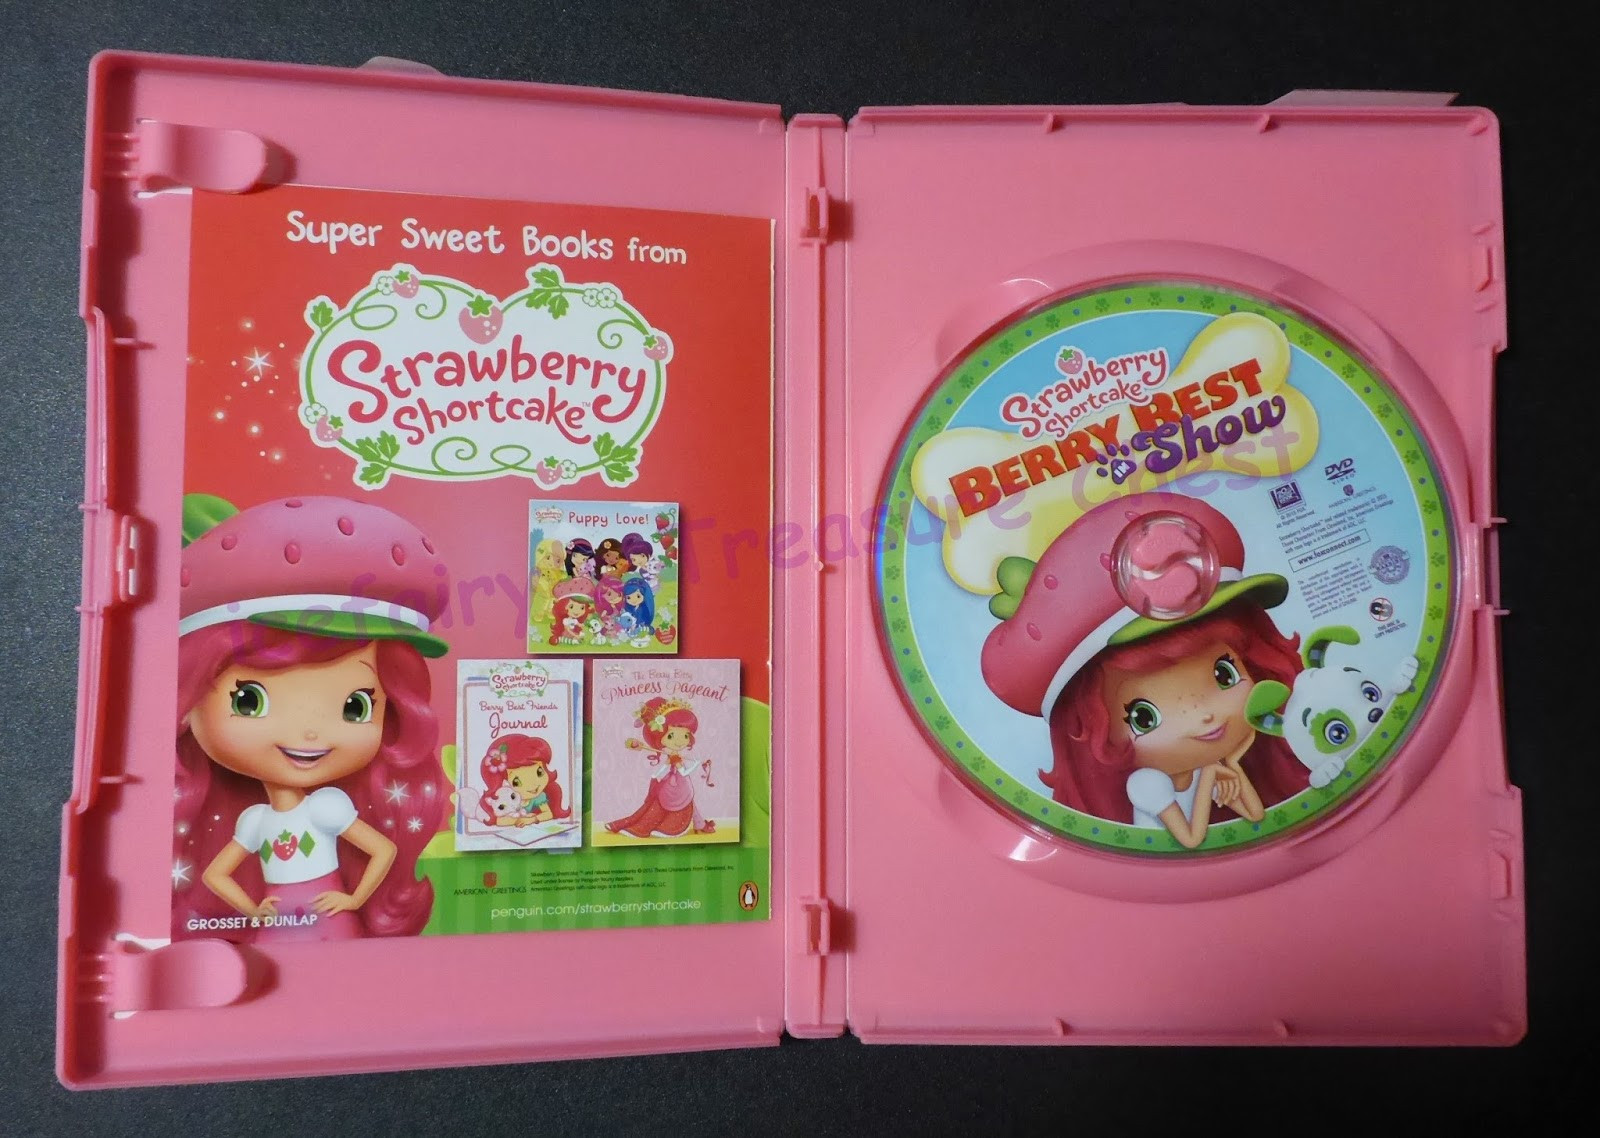 Strawberry Shortcake Dvds  Strawberry Shortcake Berry Best In Show DVD Review & Giveaway